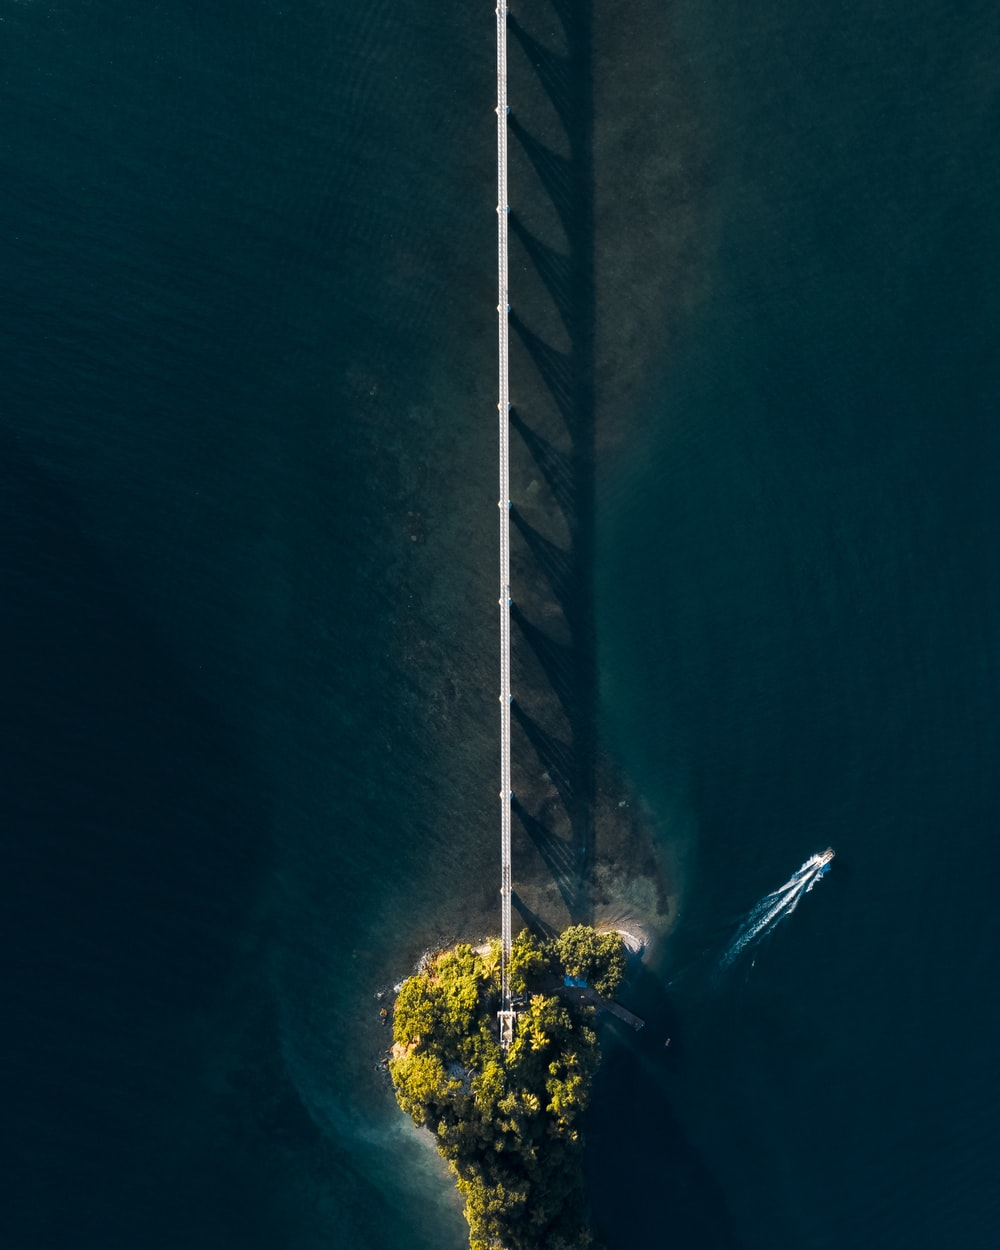 areal photography of trees between body of water